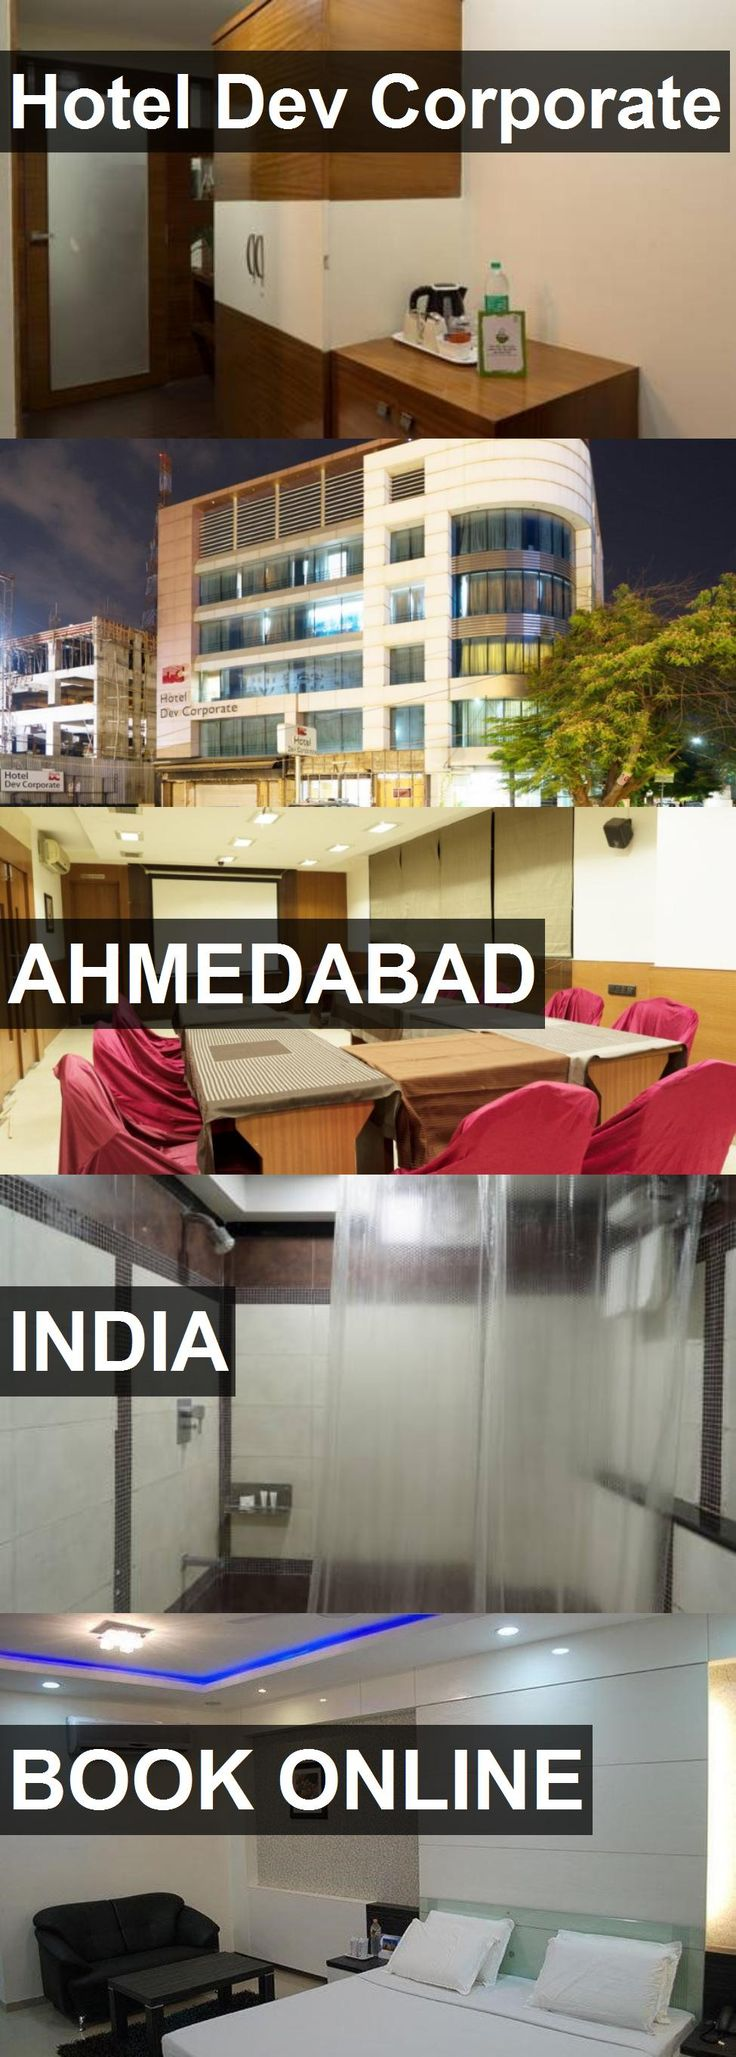 Hotel Hotel Dev Corporate in Ahmedabad, India. For more information, photos, reviews and best prices please follow the link. #India #Ahmedabad #HotelDevCorporate #hotel #travel #vacation